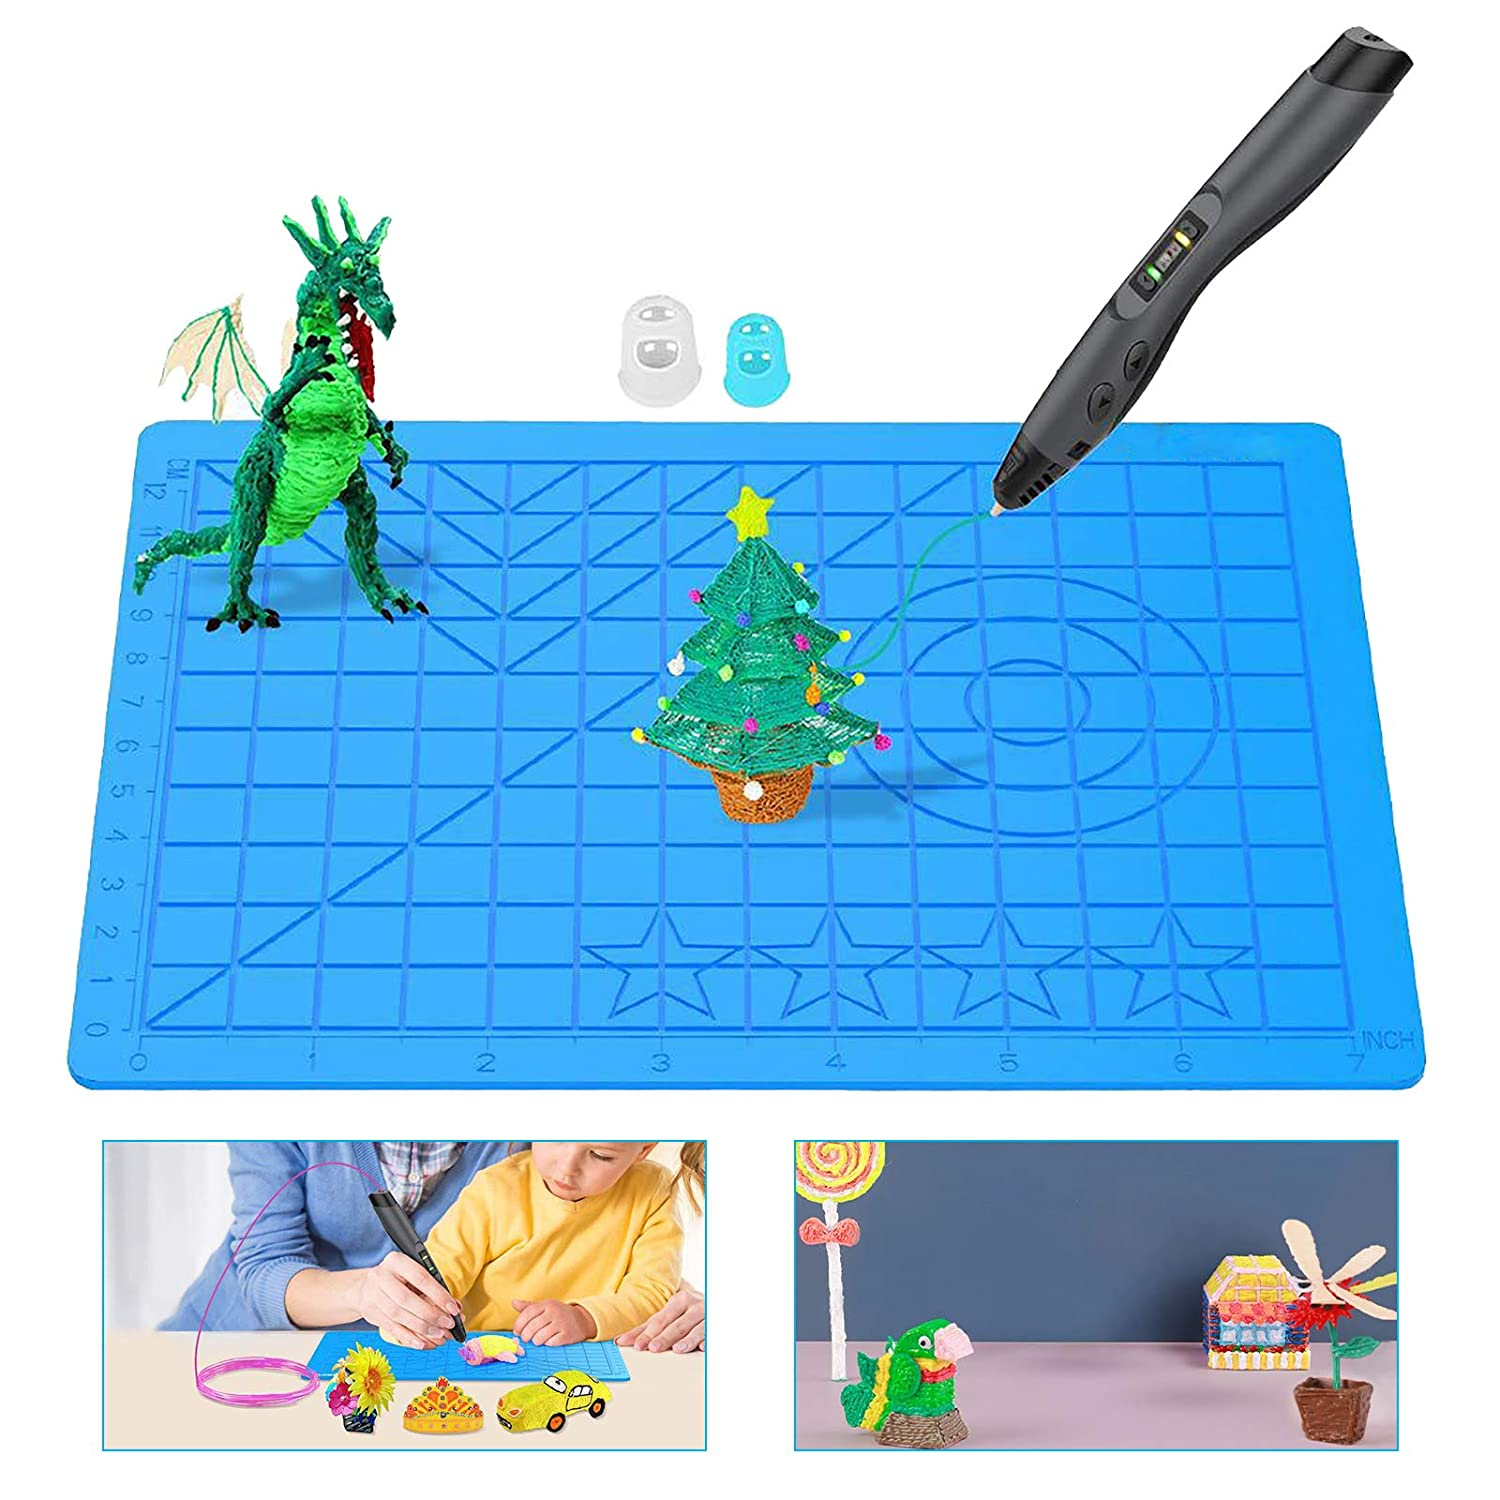 15 X 20 X 0.3 cm 3D Printing Pens Mat Silicone Pen Pad Design Mat with Patterns Mat 2 Finger Protectors